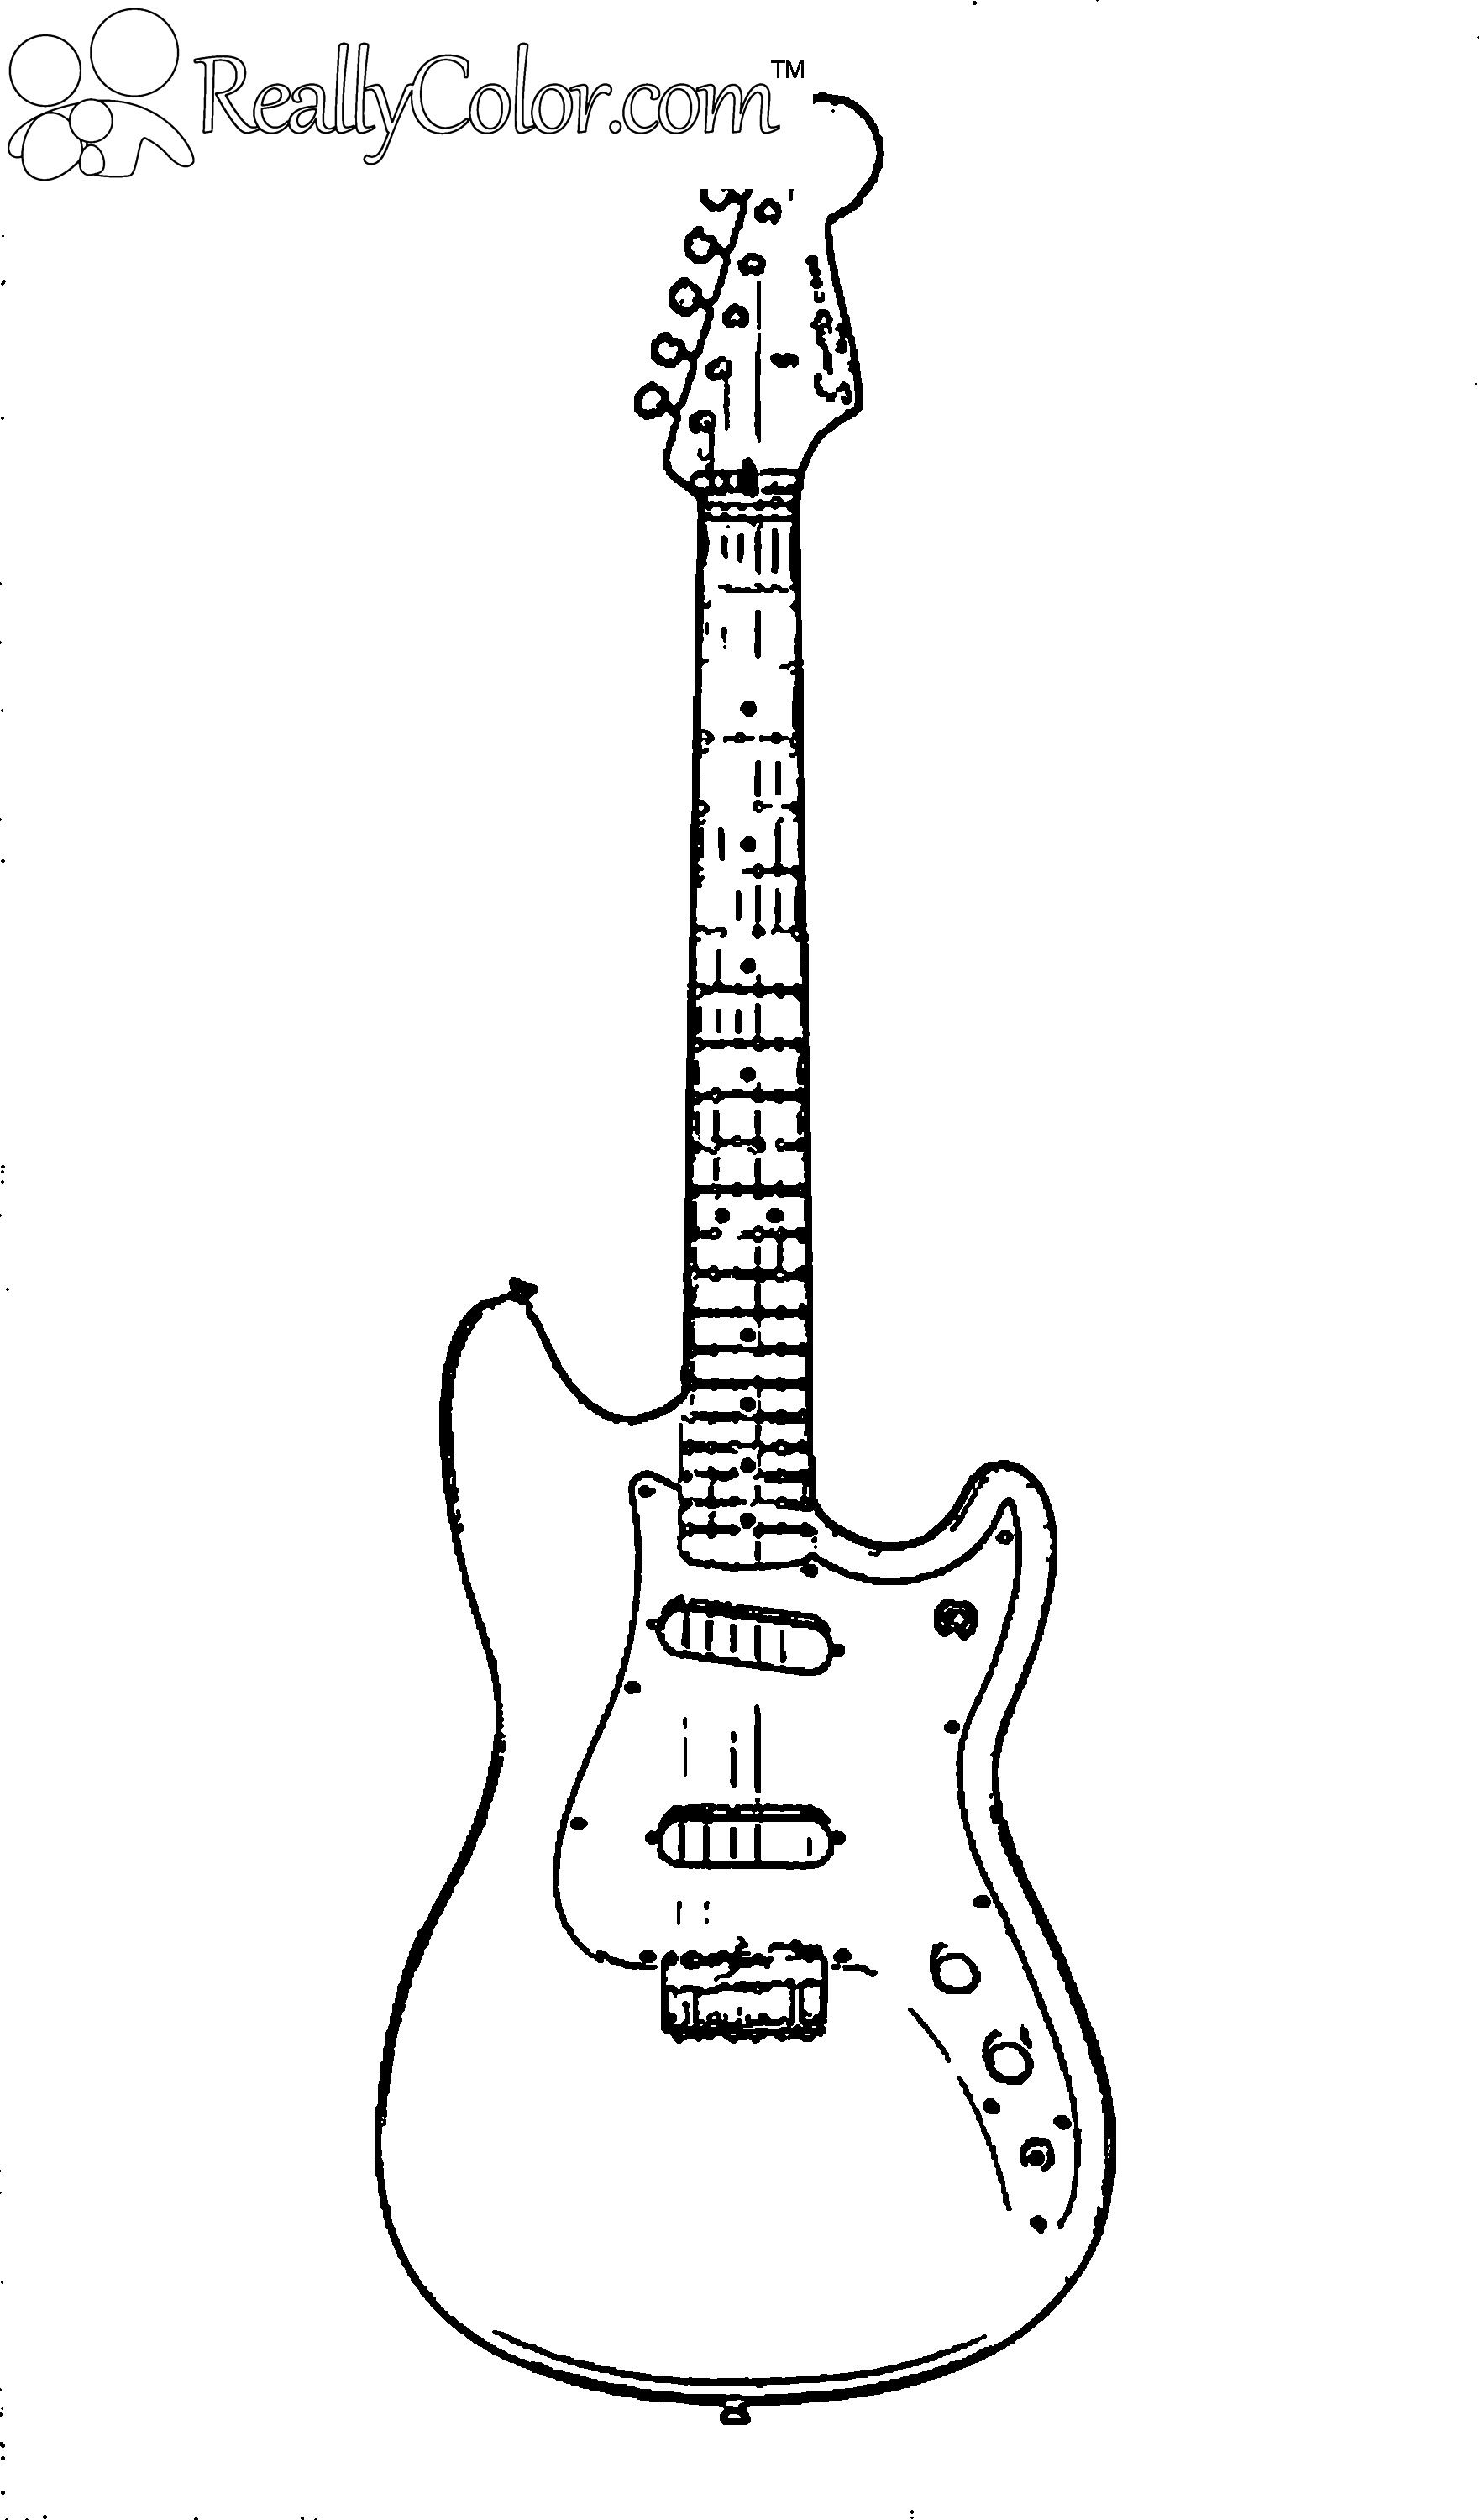 Guitar Reallycolor Coloring Pages Colouring Pages Coloring Books